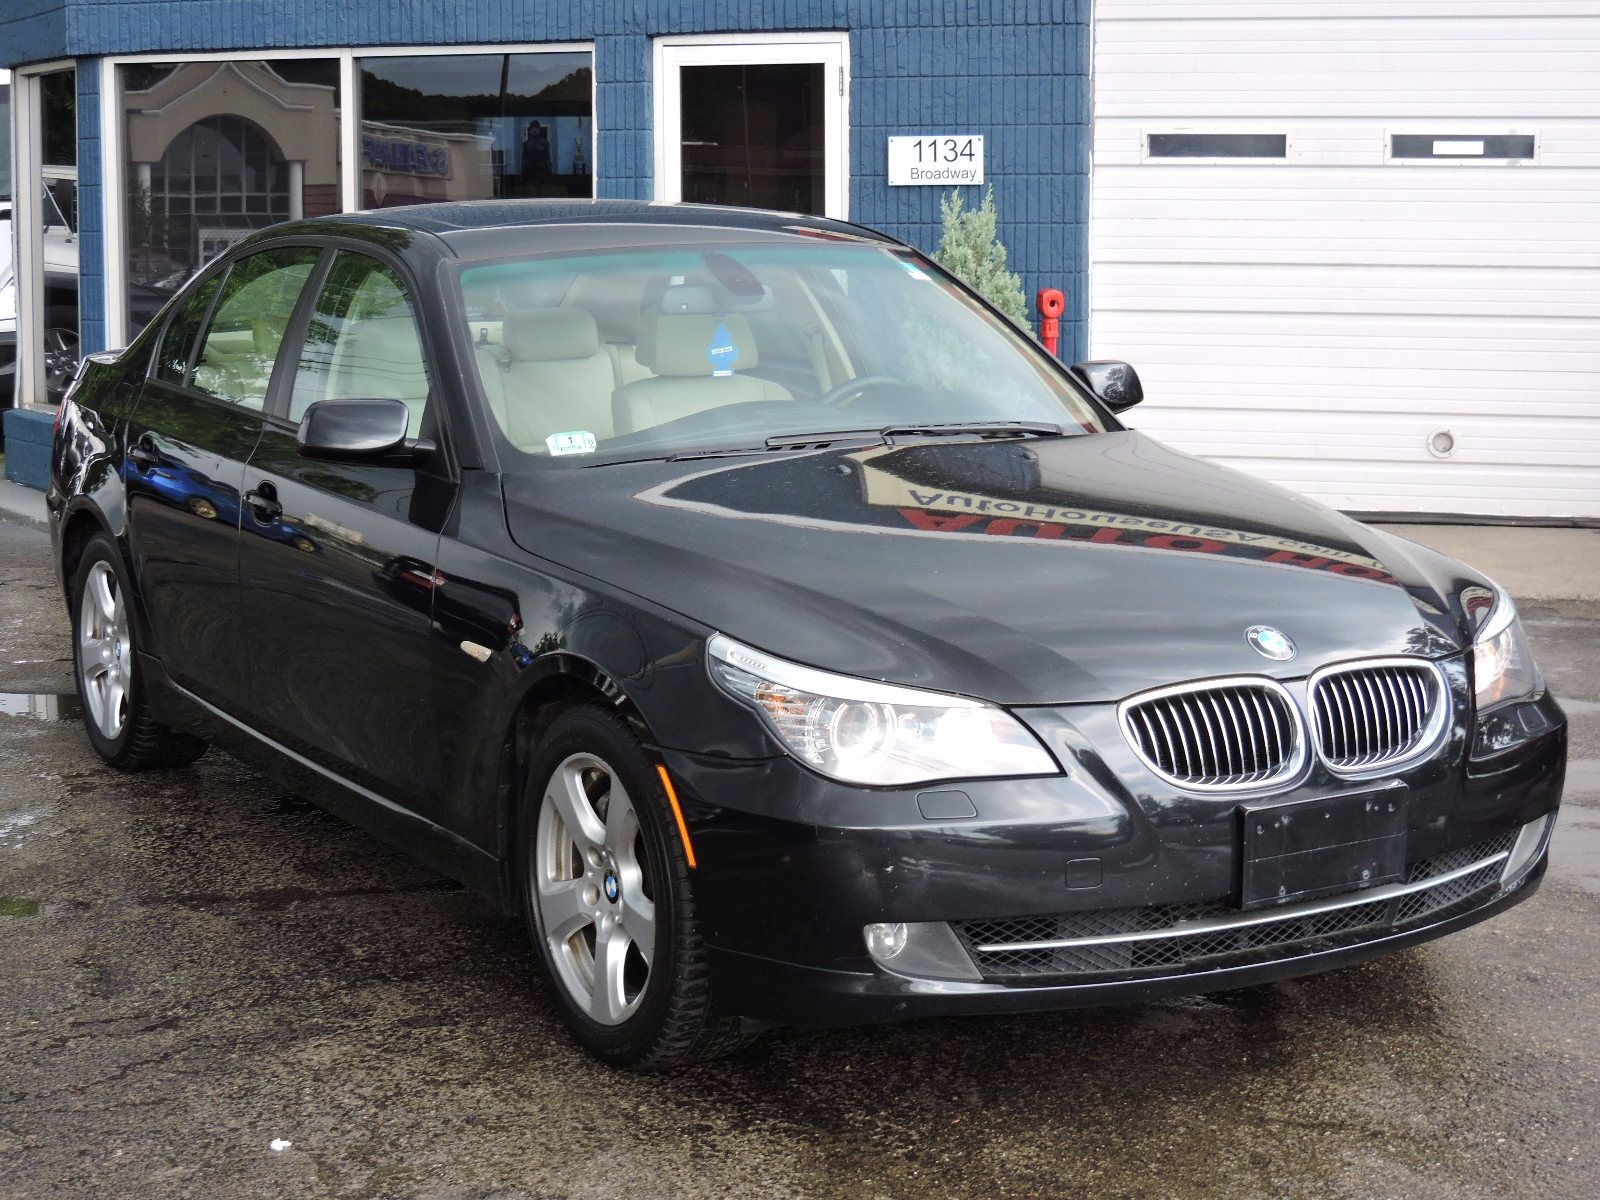 2008 BMW 535xi - xDrive - All Wheel Drive - Navigation - Sport Package